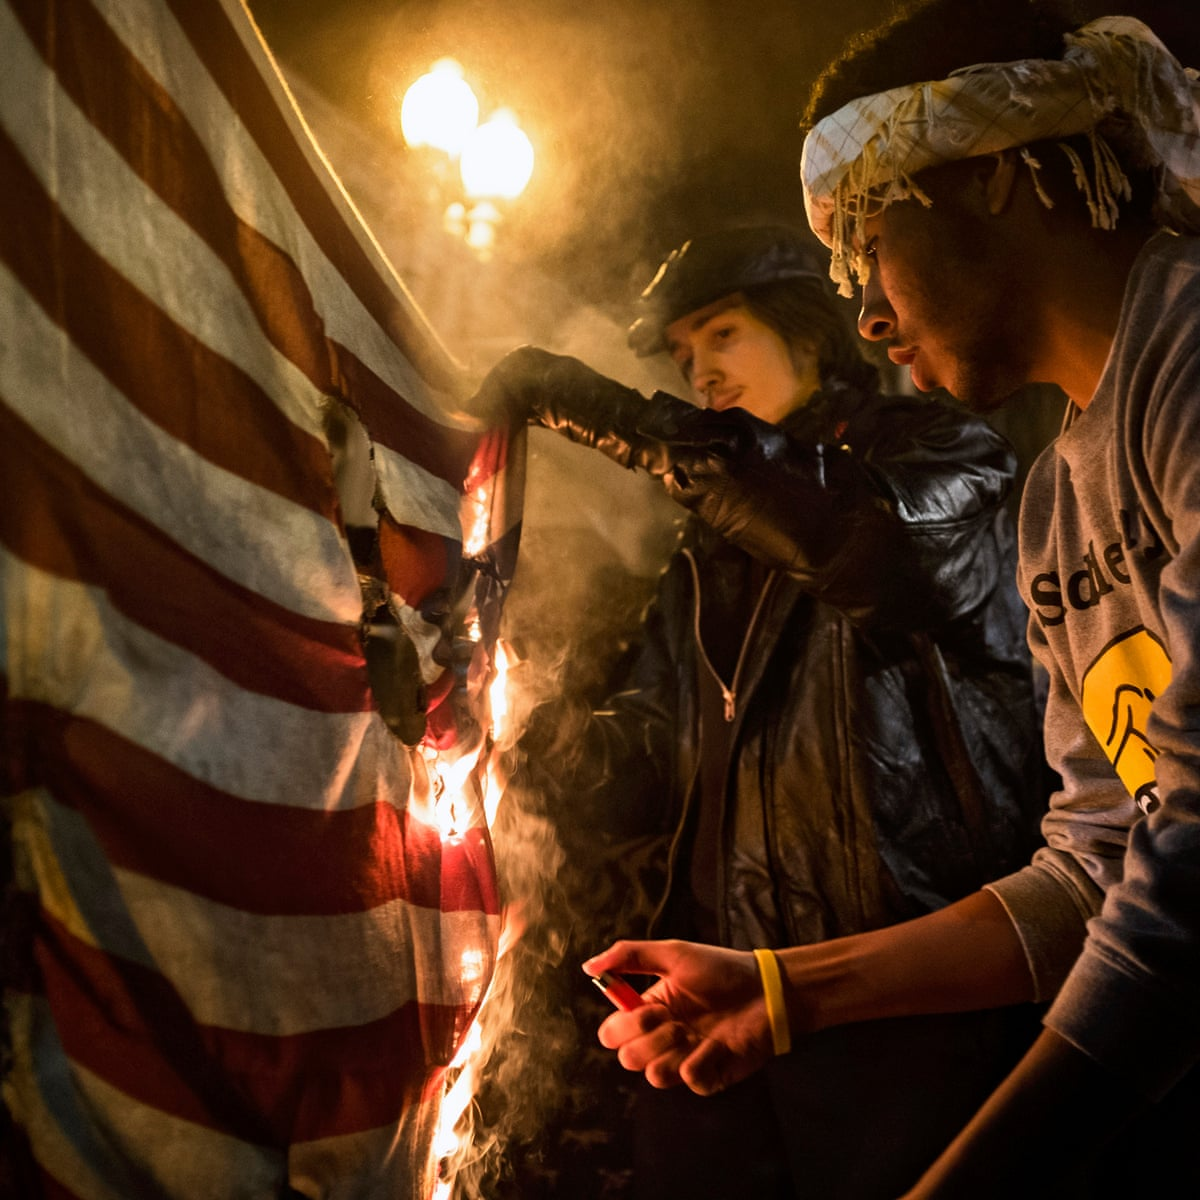 Blaze Of Glory The Grand Tradition Of Burning The American Flag Protest The Guardian